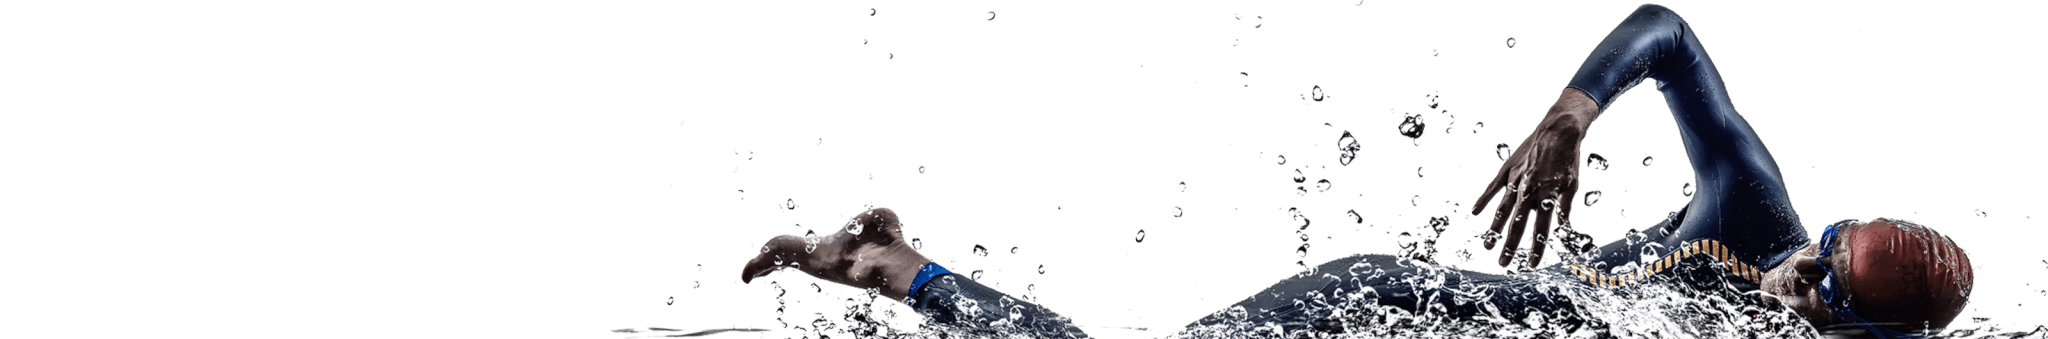 http://oxigeno.bold-themes.com/swimming-water-polo/wp-content/uploads/sites/2/2017/10/inner_swimmer.png